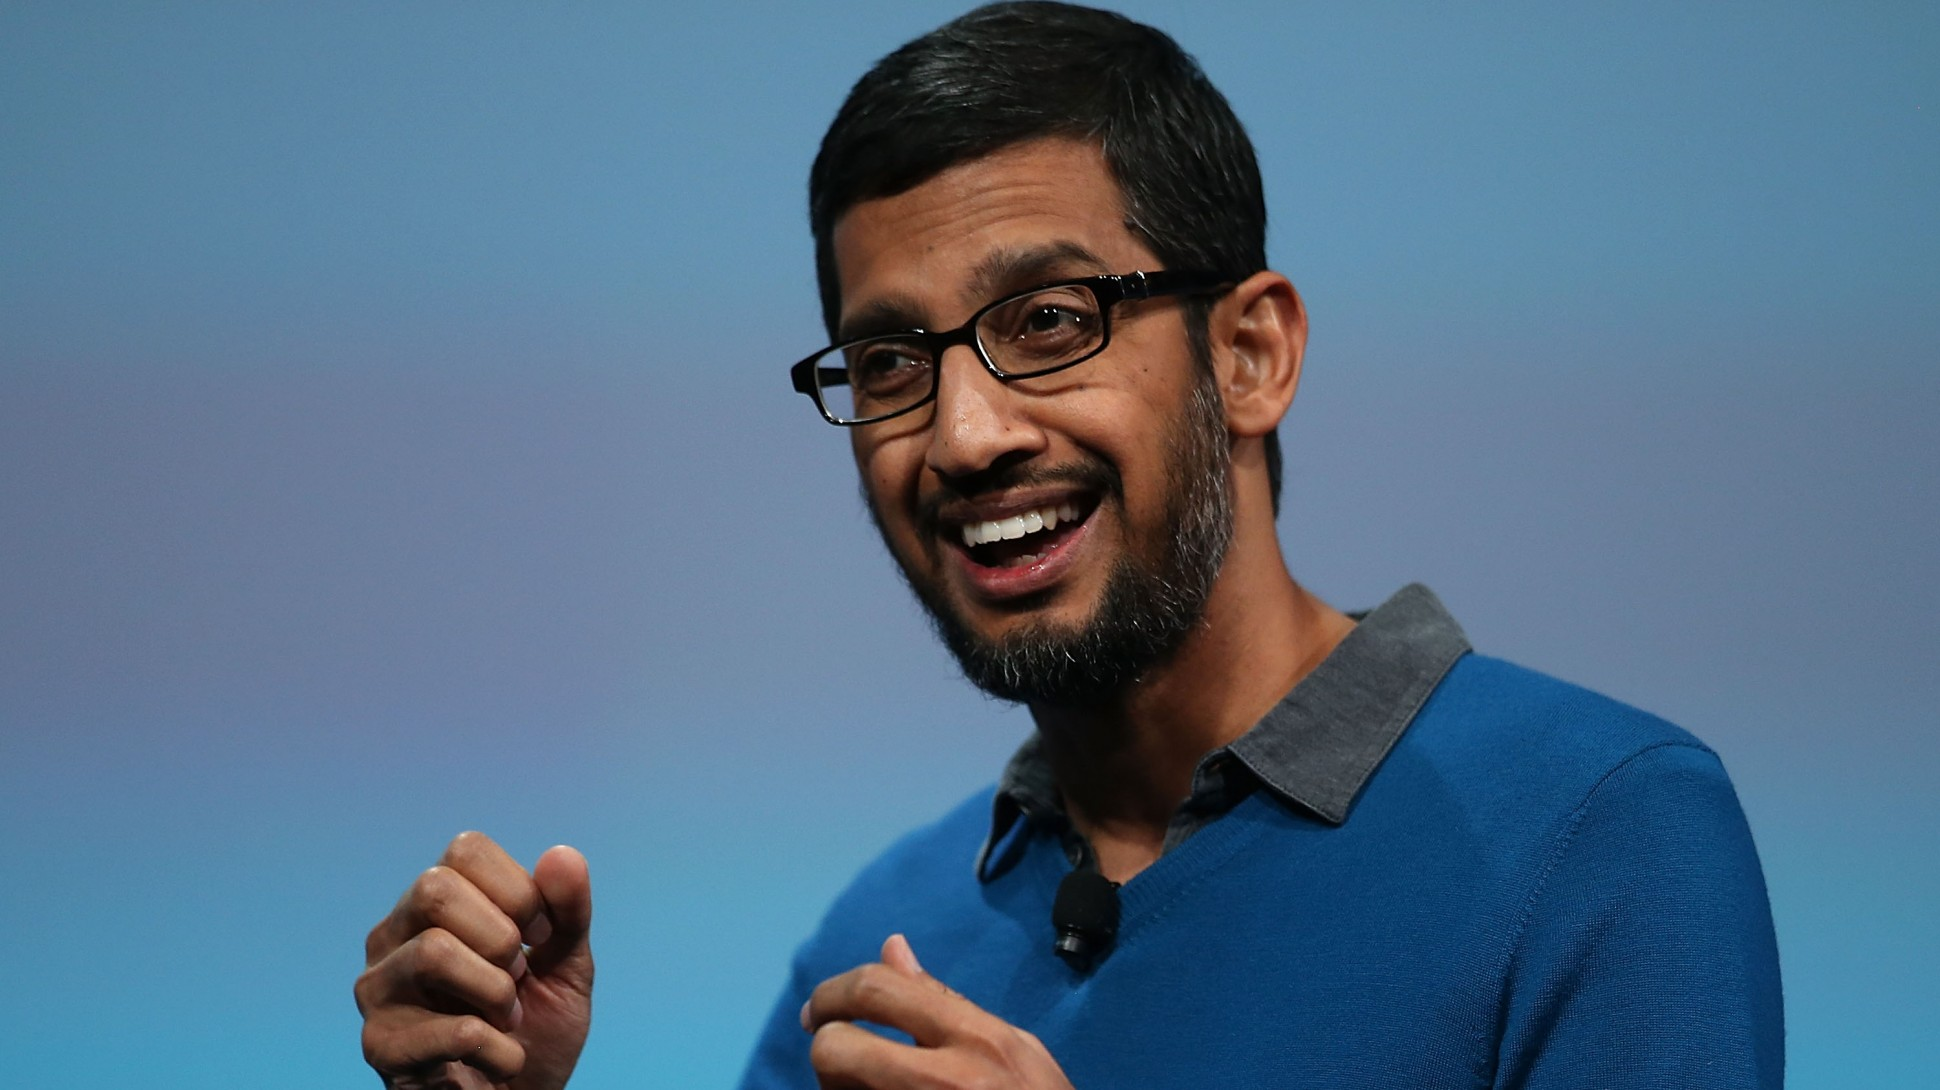 Sundar Pichai 100 million dollars